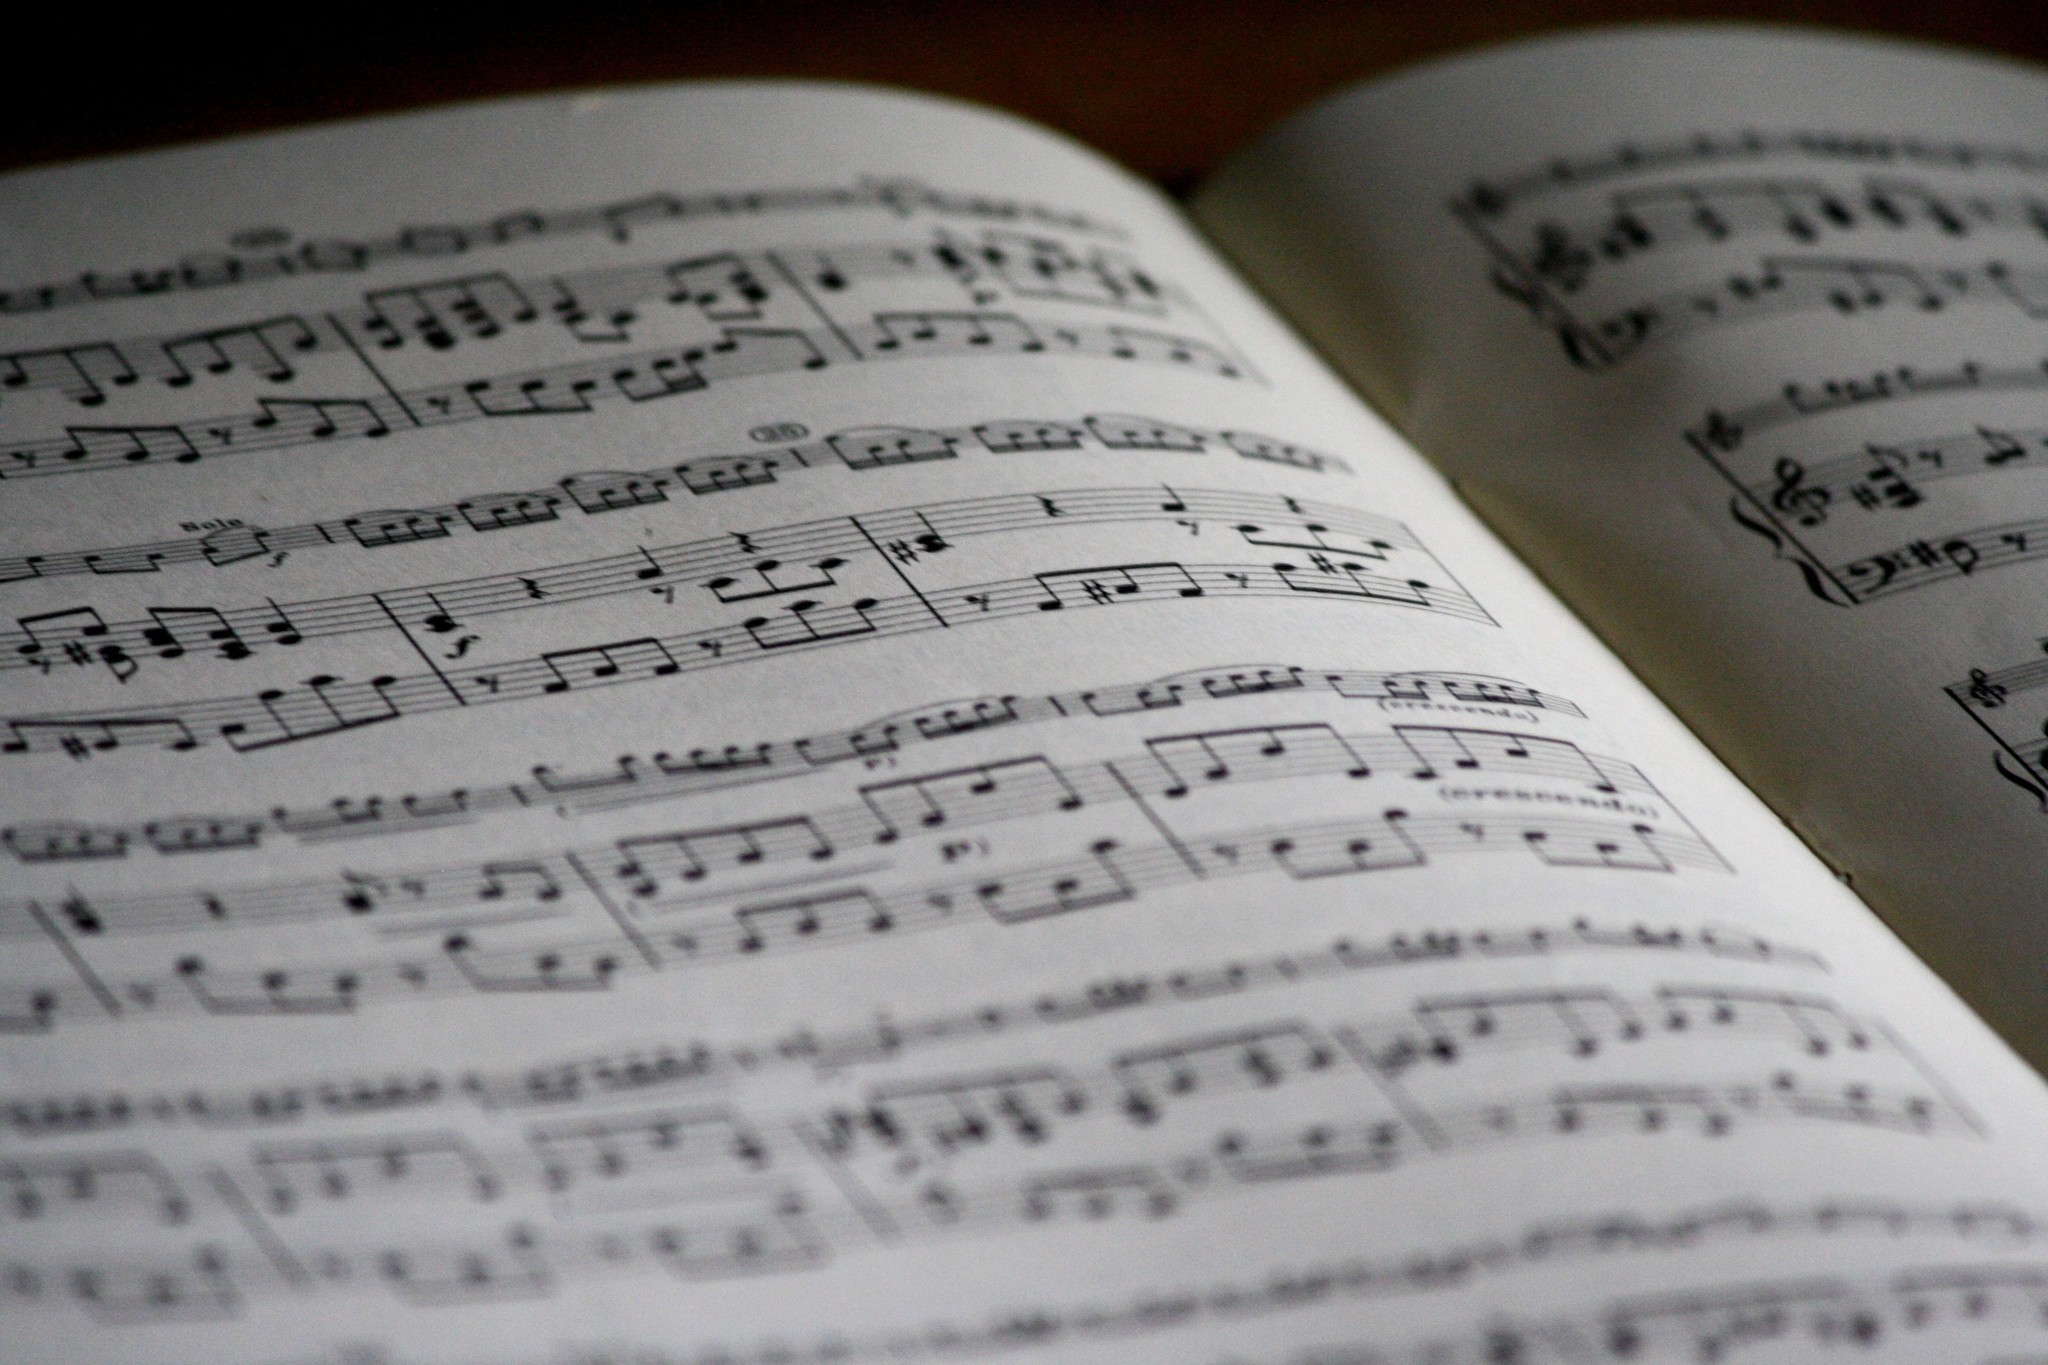 The (un)importance of notes. A story about music and perfume.